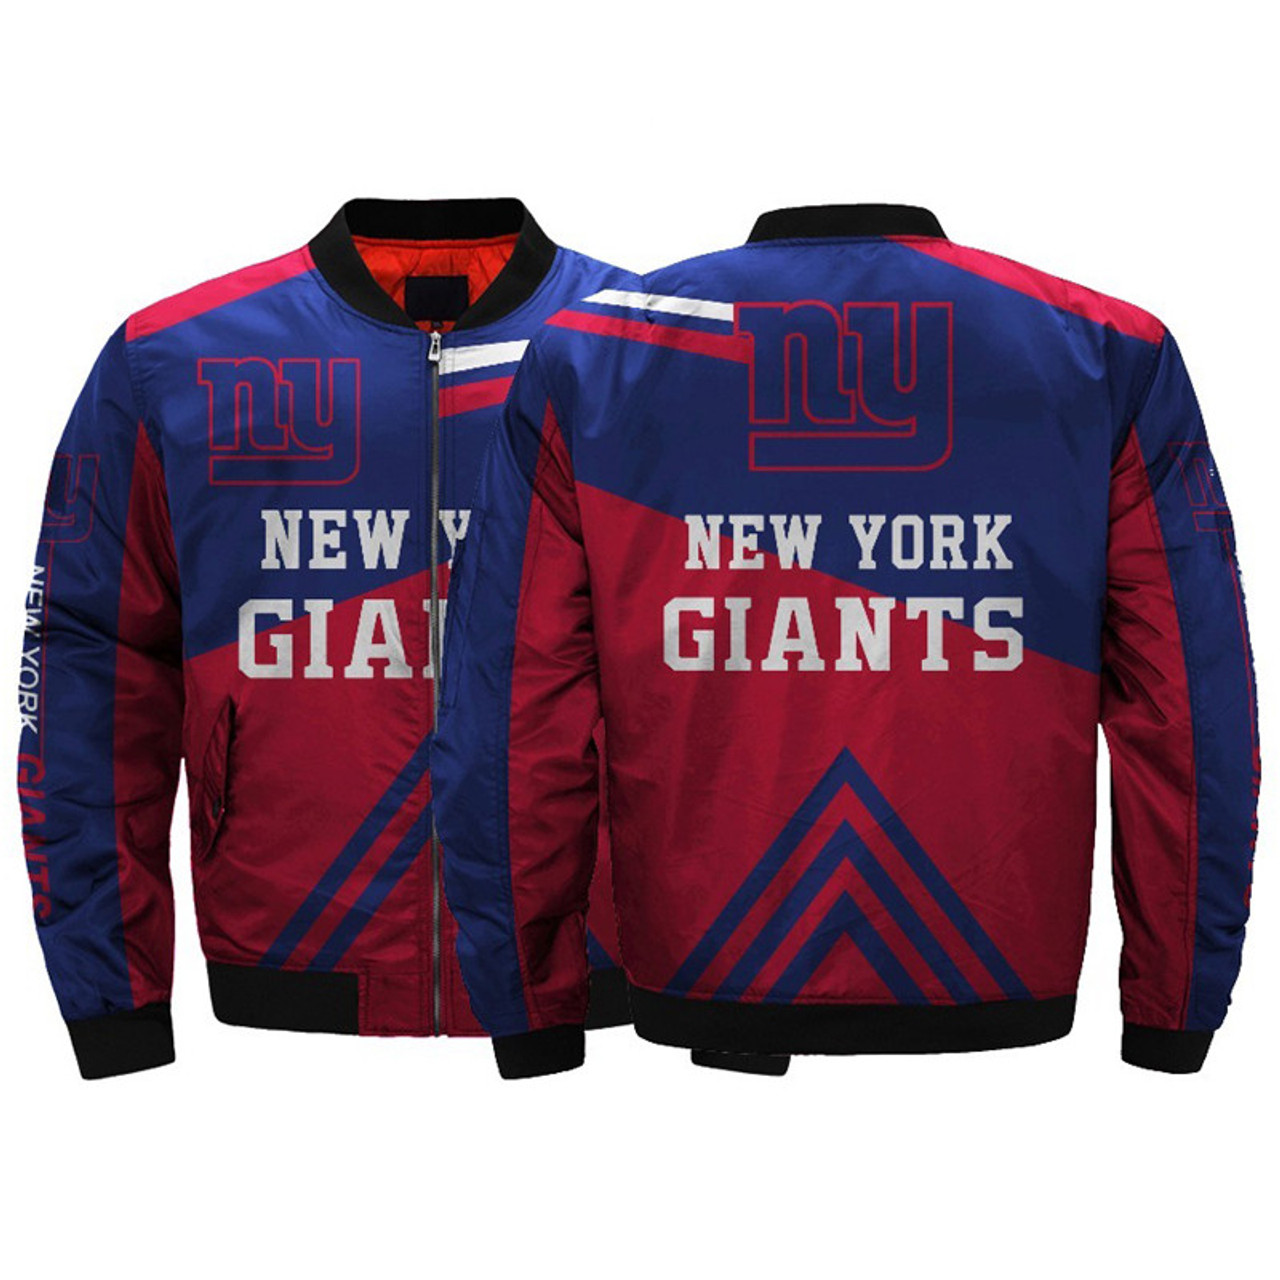 promo code 0e46e 47c89 **(OFFICIALLY-LICENSED-N.F.L.NEW-YORK-GIANTS/CLASSIC-GIANTS-OFFICIAL-TEAM-COLORS  & OFFICIAL-GIANTS-LOGOS,CLASSIC-BOMBER/MA-1 FLIGHT-JACKET & ...